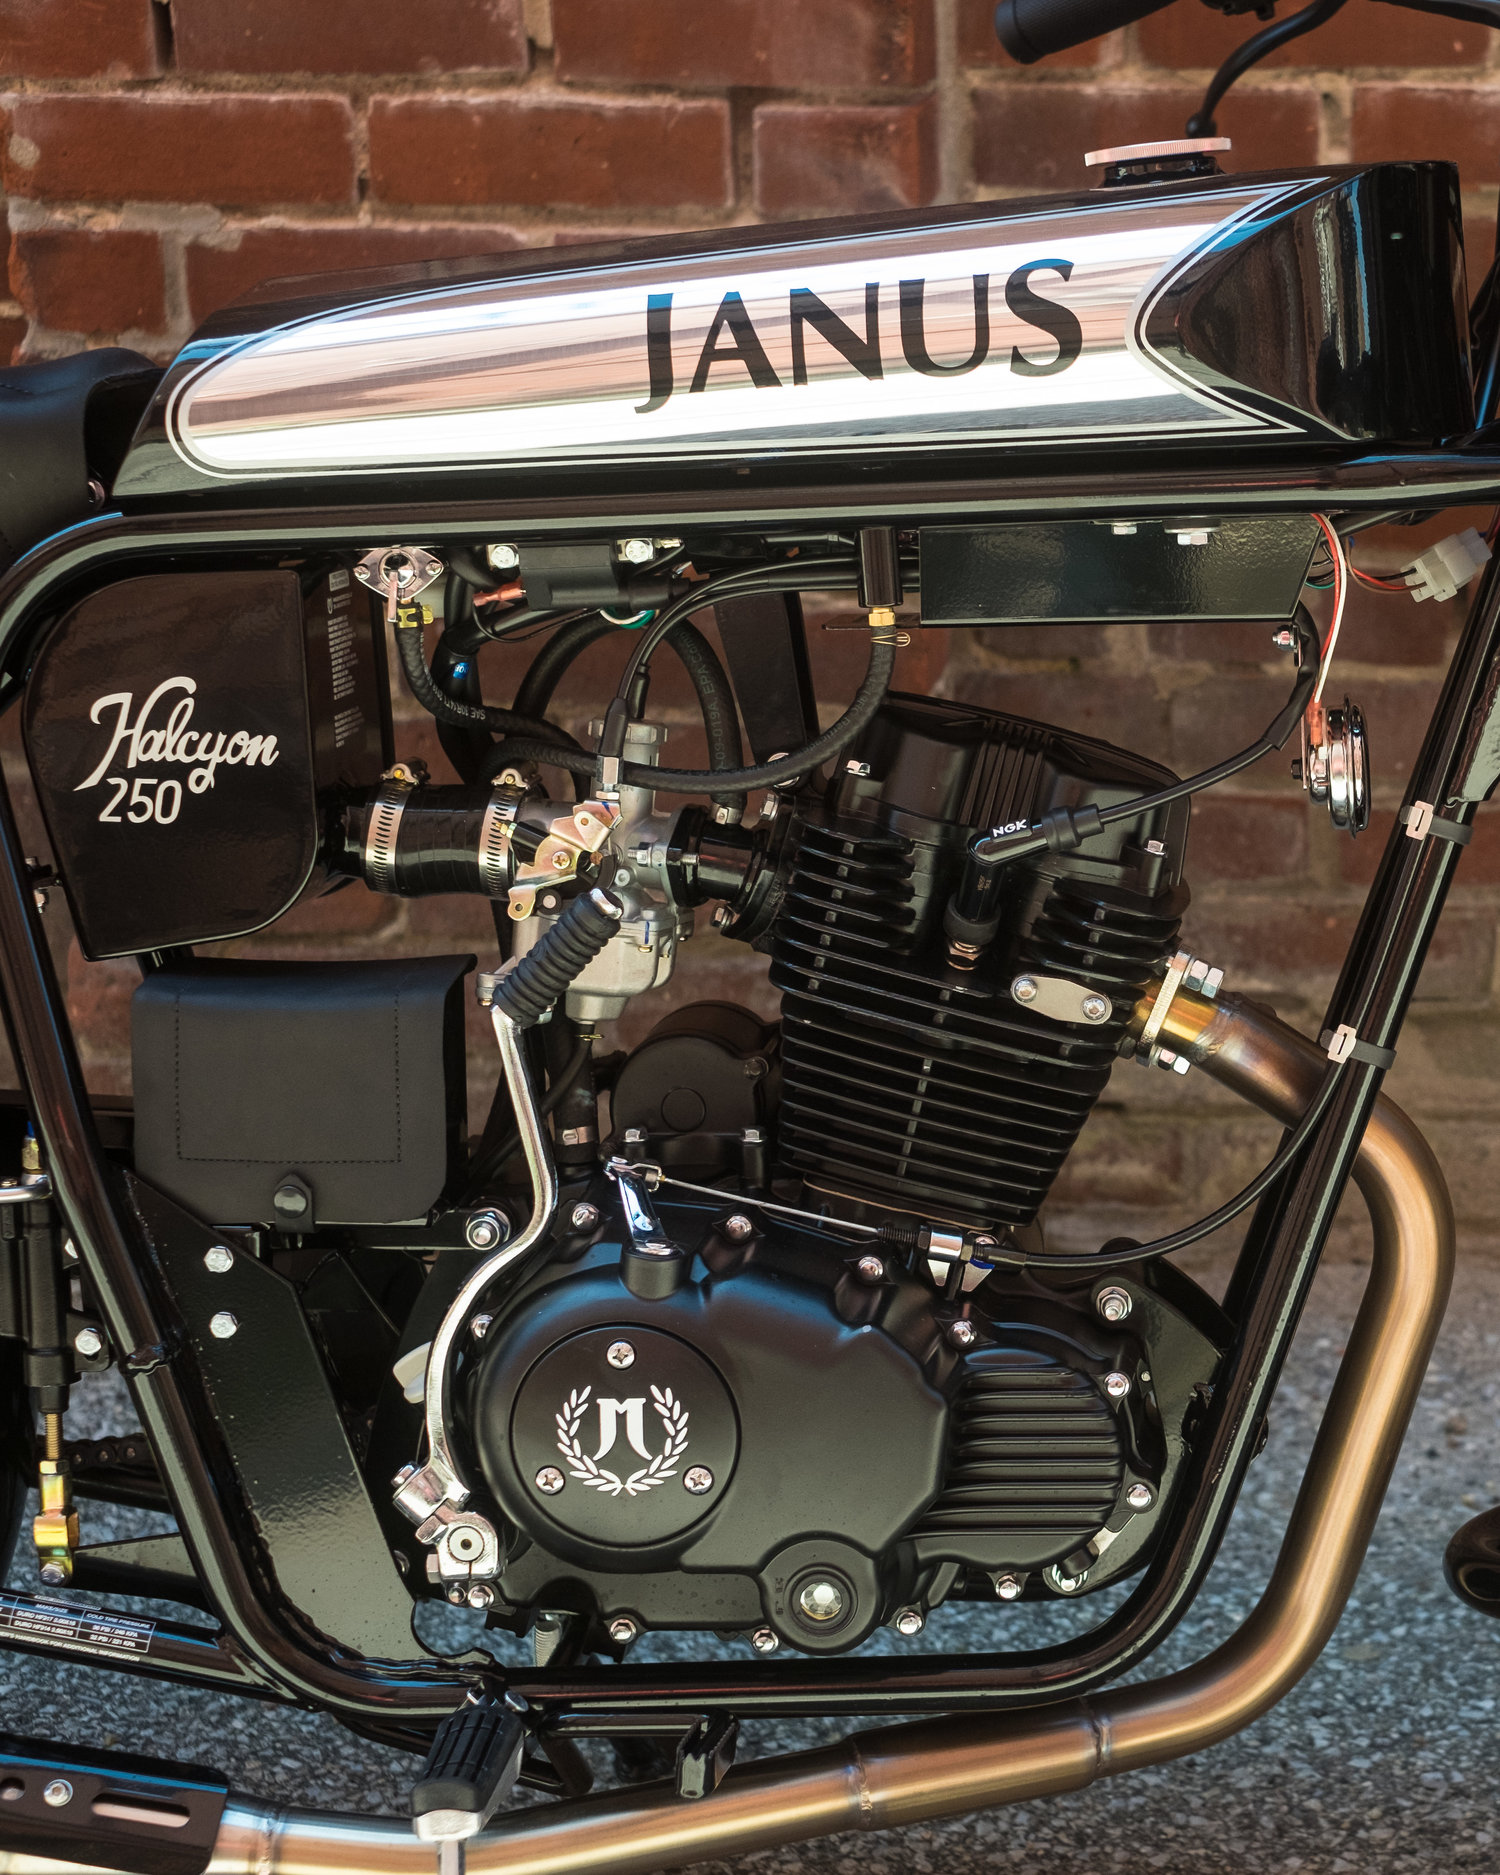 Bulletproof: The Heritage of the Janus 250 Engine — Janus Motorcycles